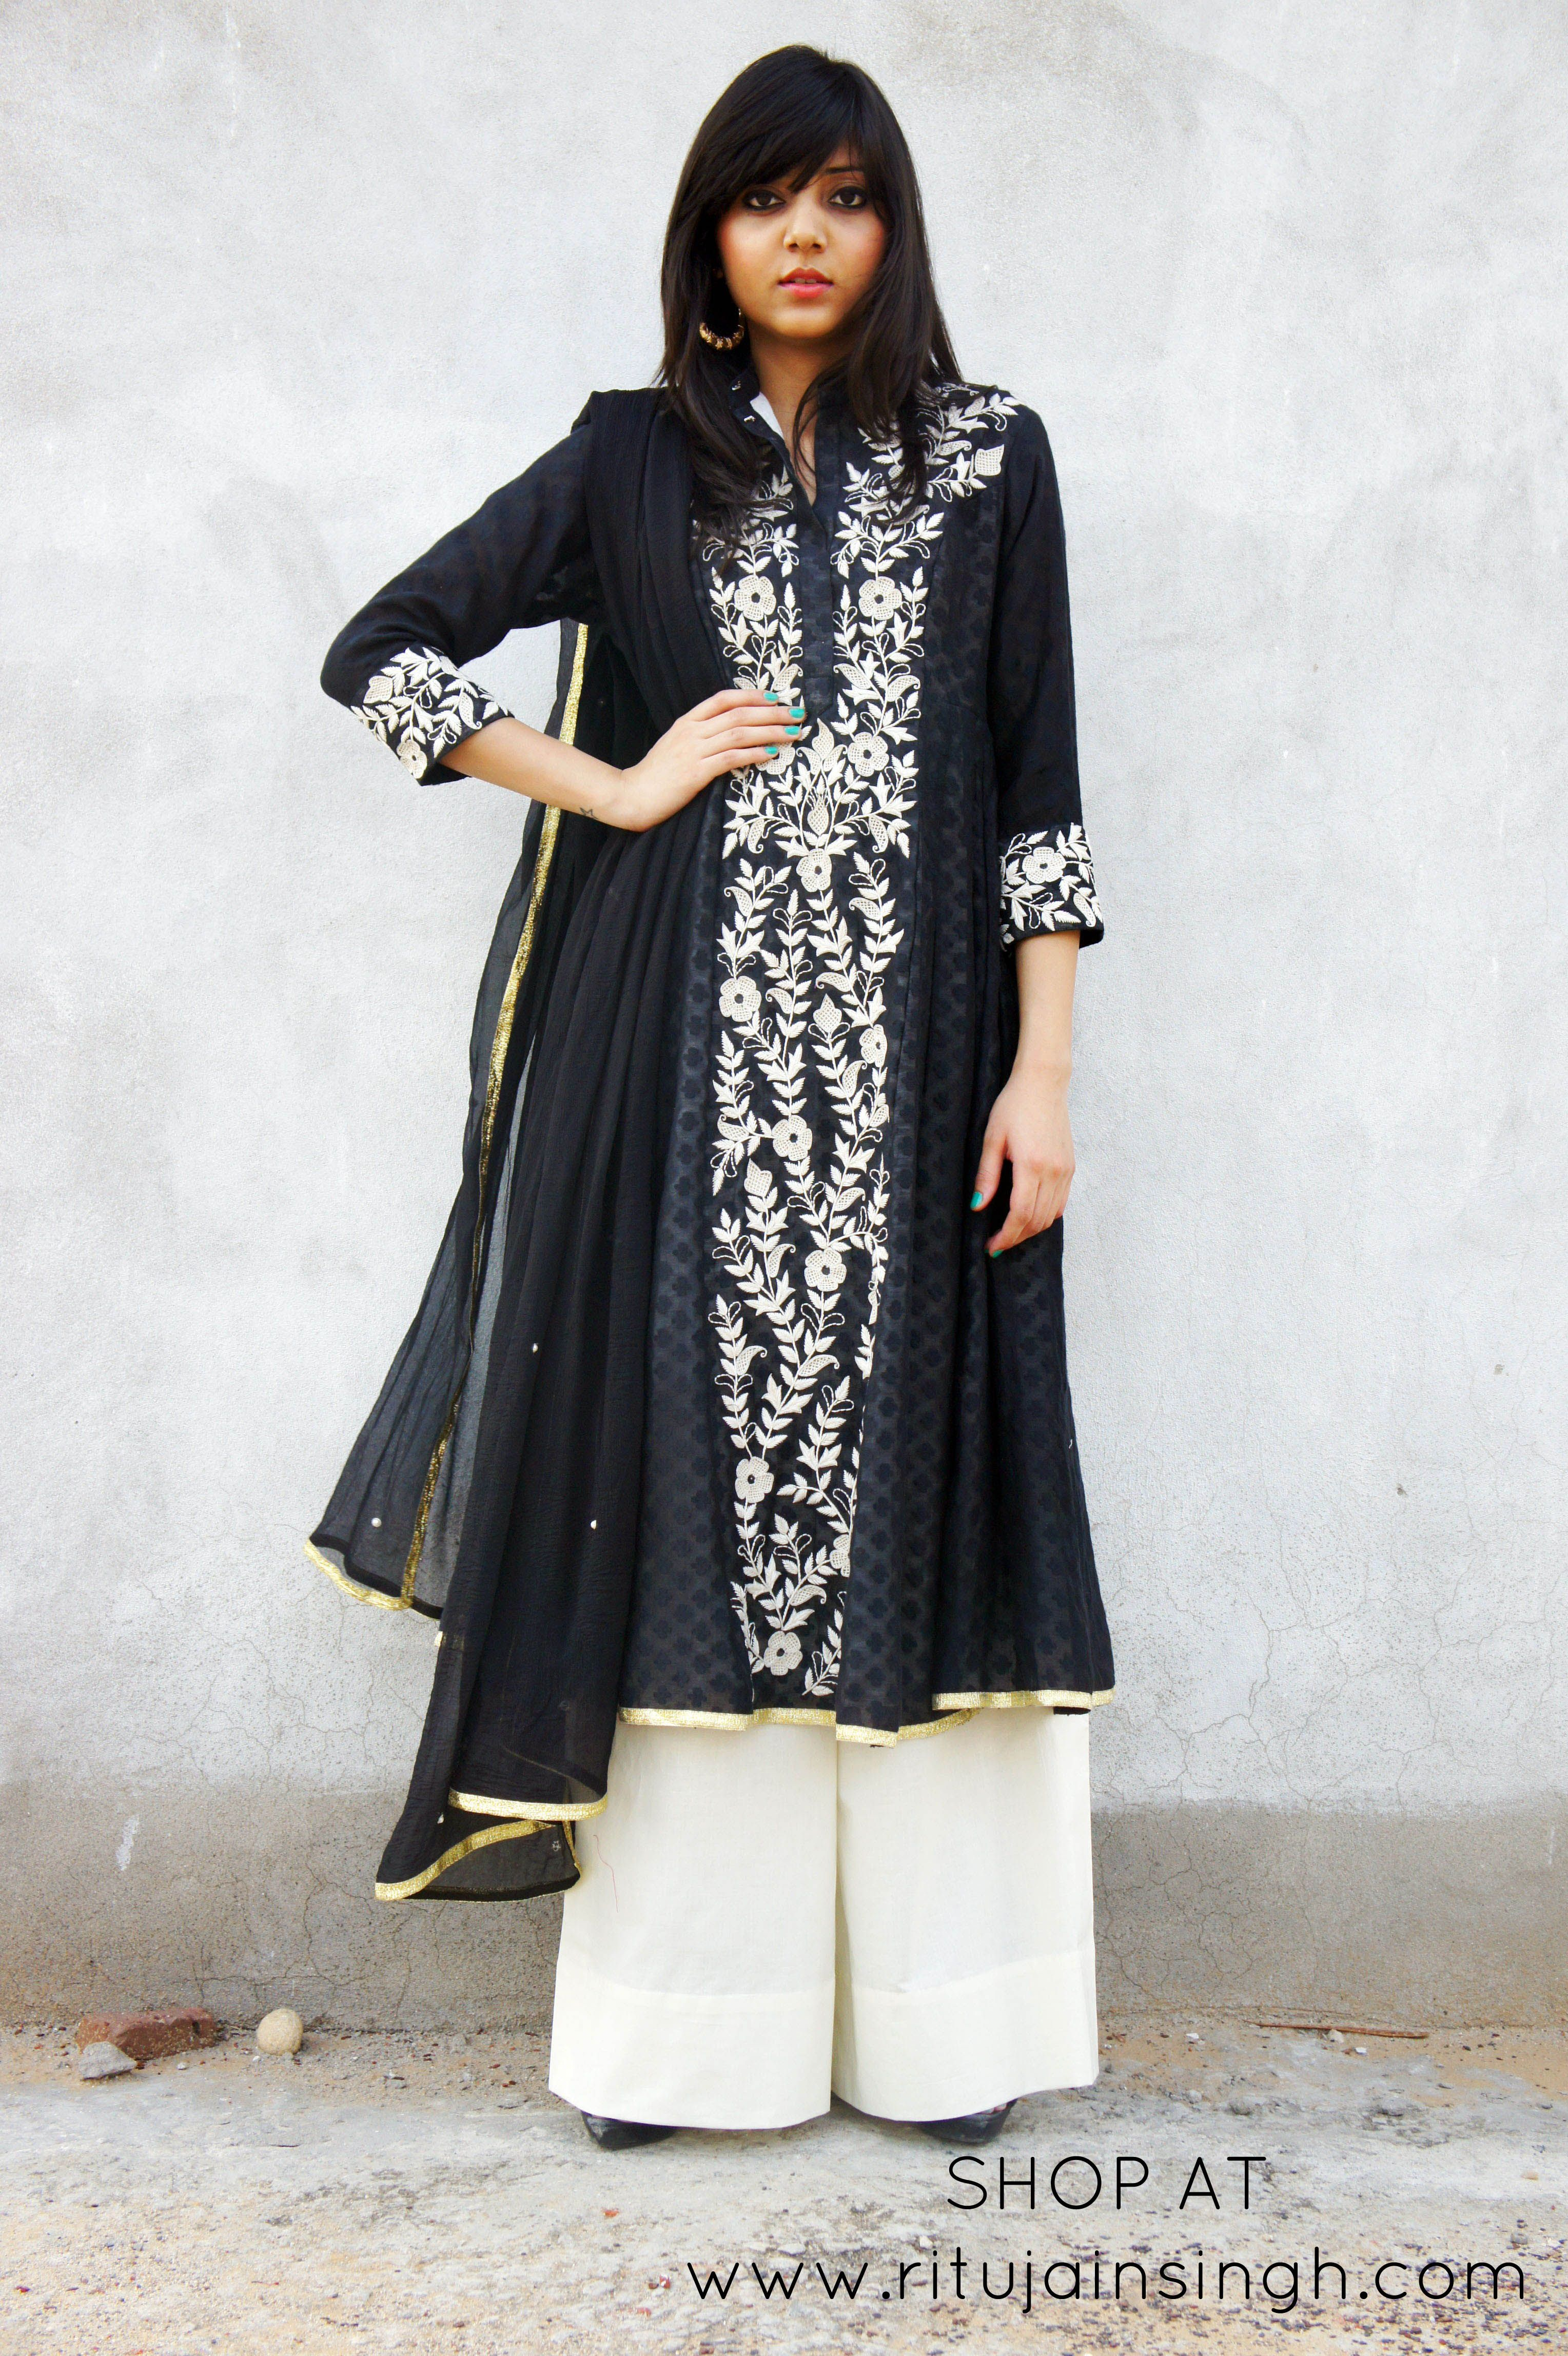 Black And White Contemporary Indian Wear Shop At